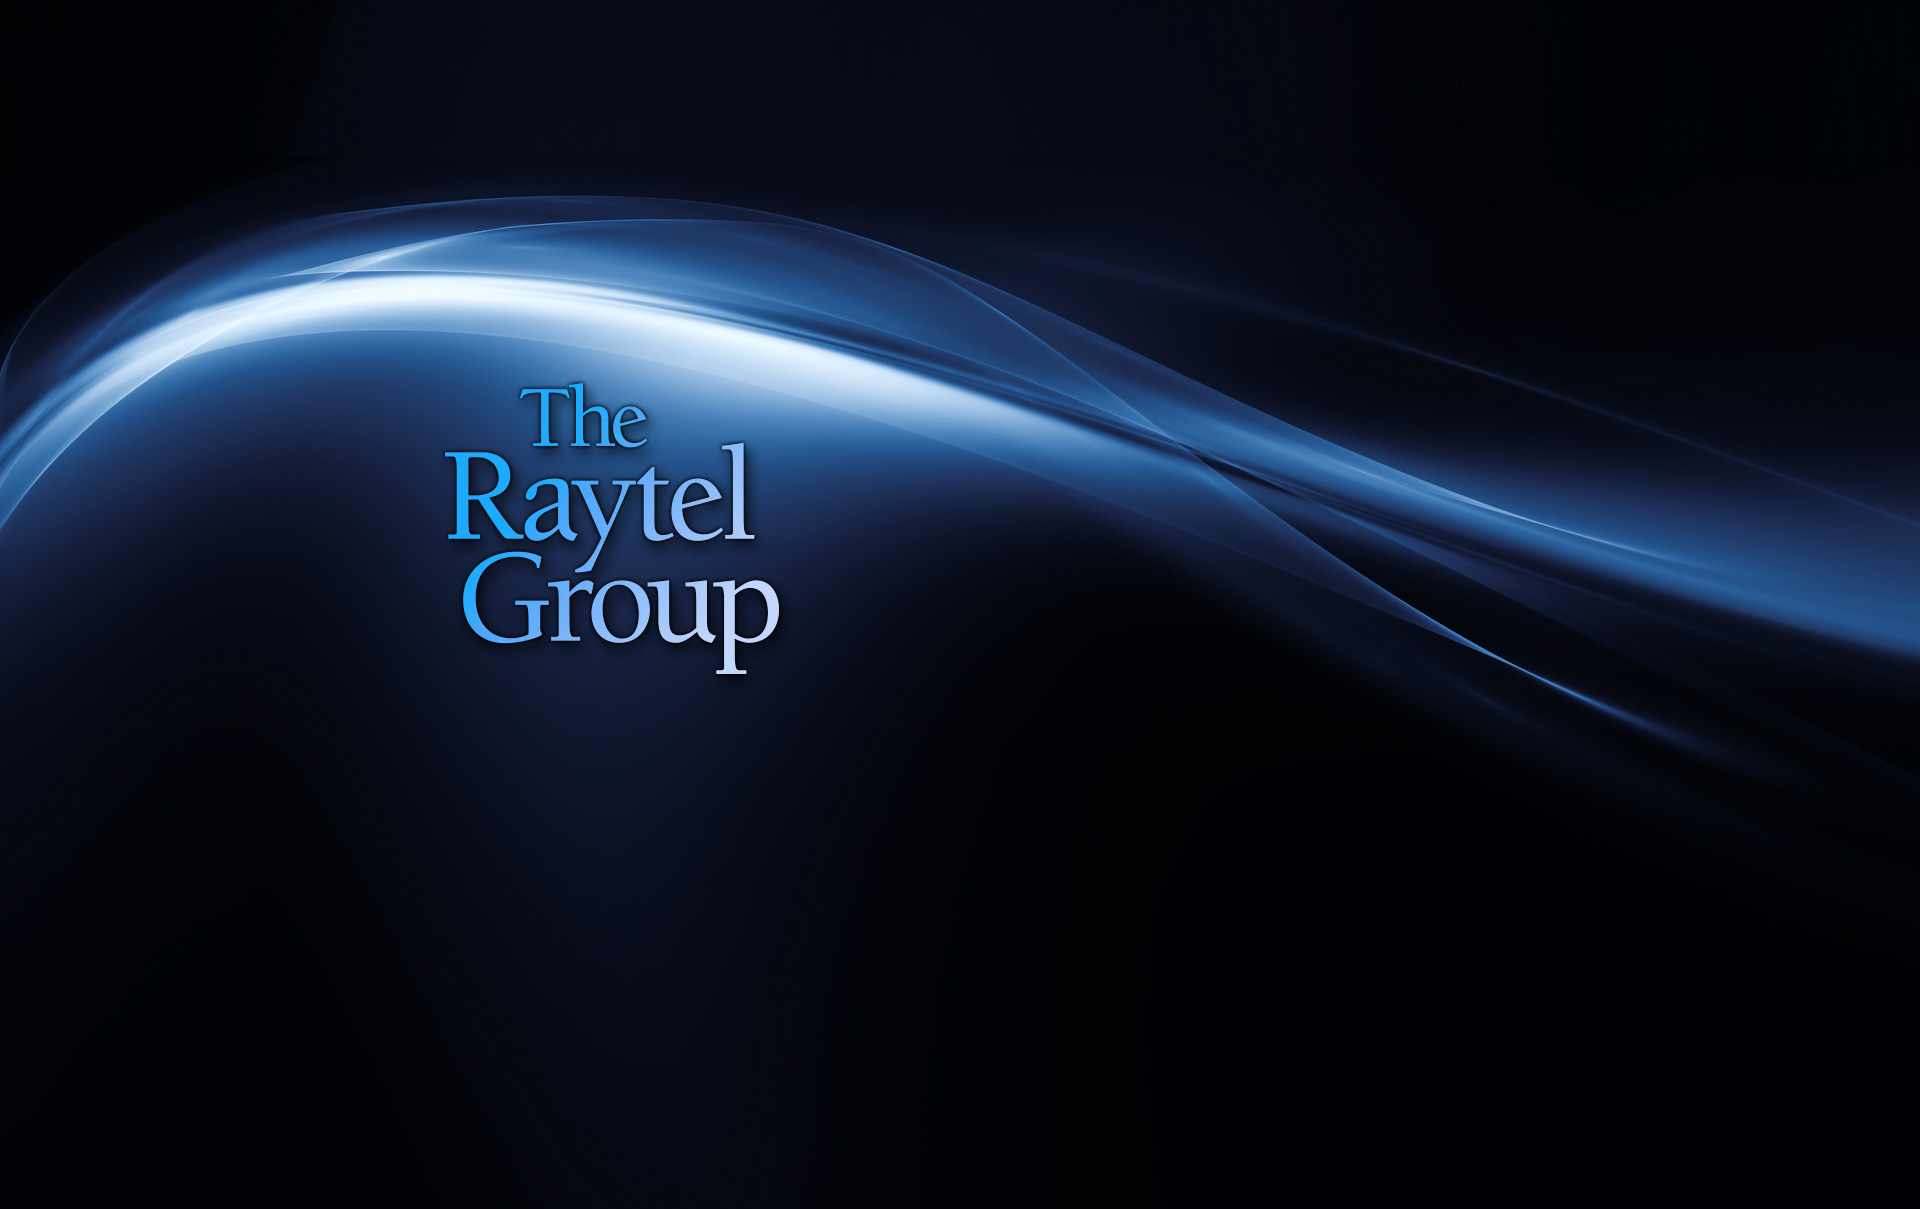 The Raytel Group